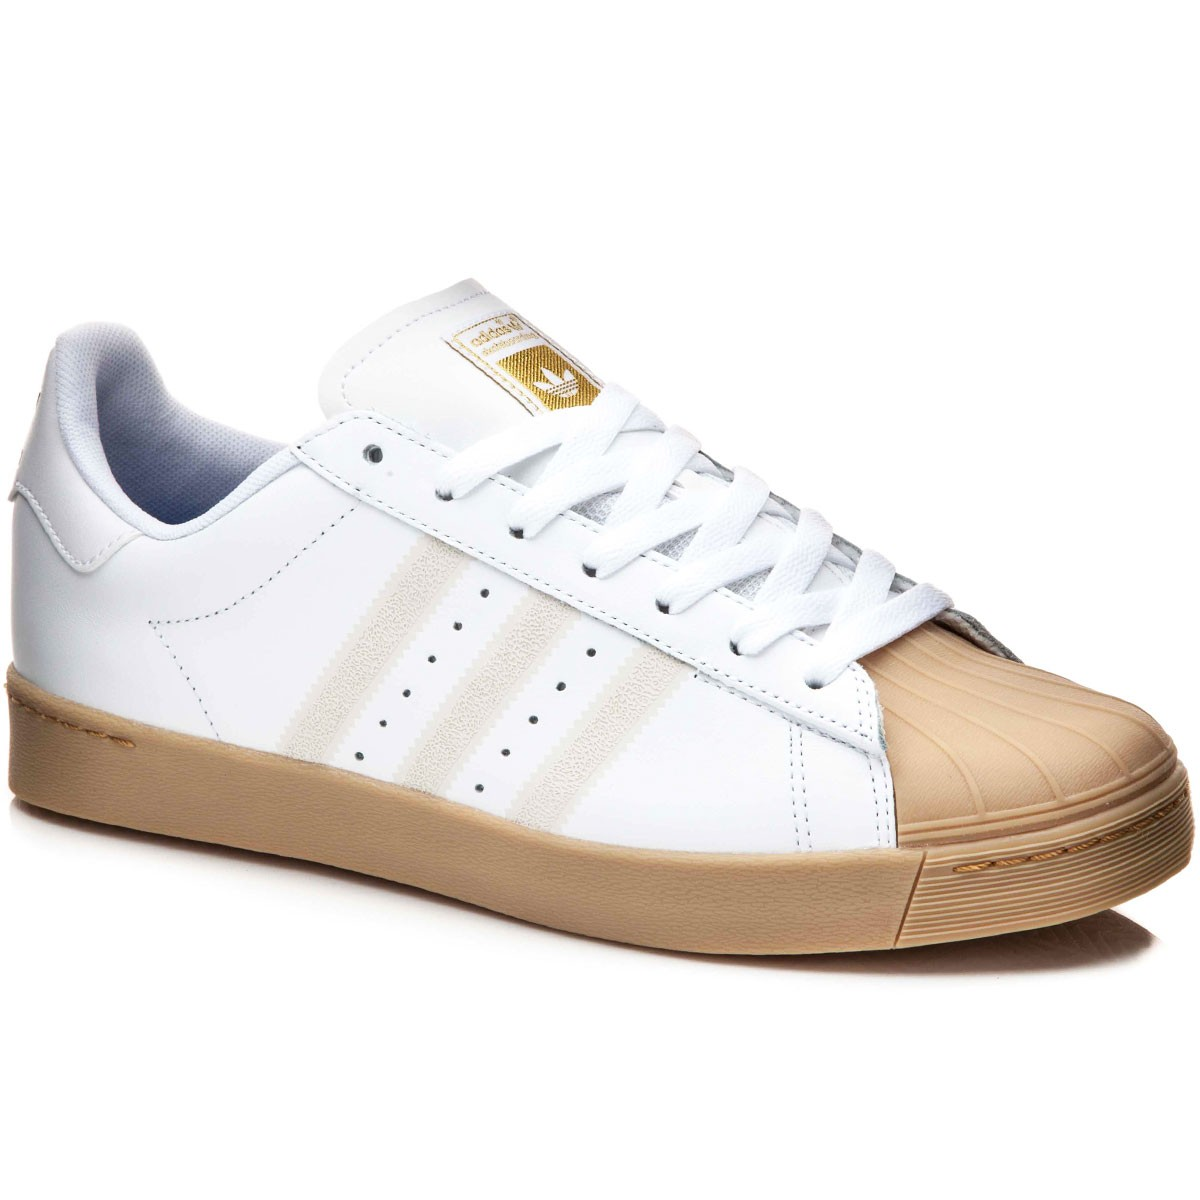 adidas Superstar Vulc ADV Pastel Blue Shoes Unisex's Shoes